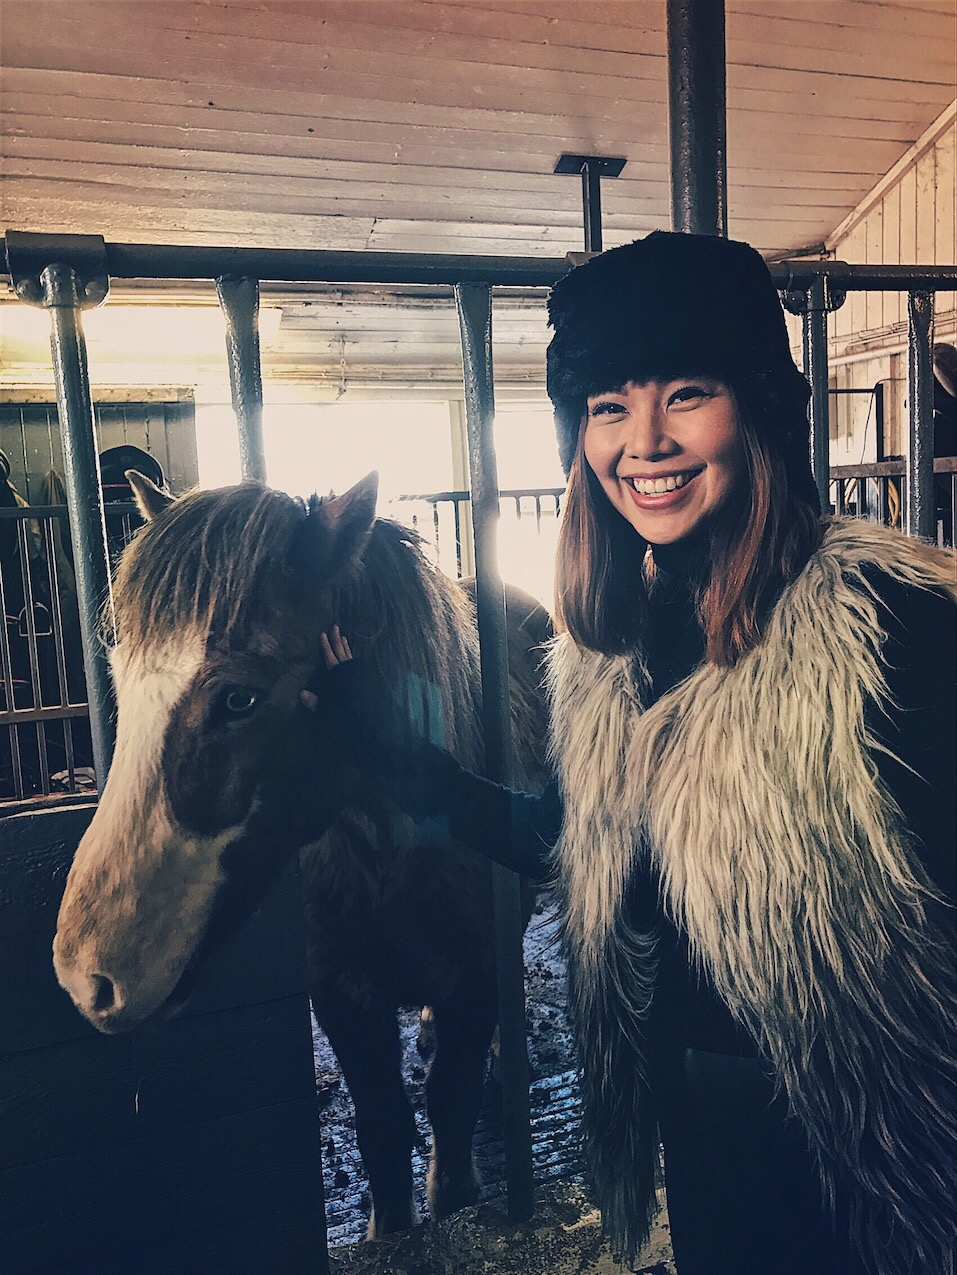 Bianca Valerio Game of Thrones Arya Stark Horse Iceland